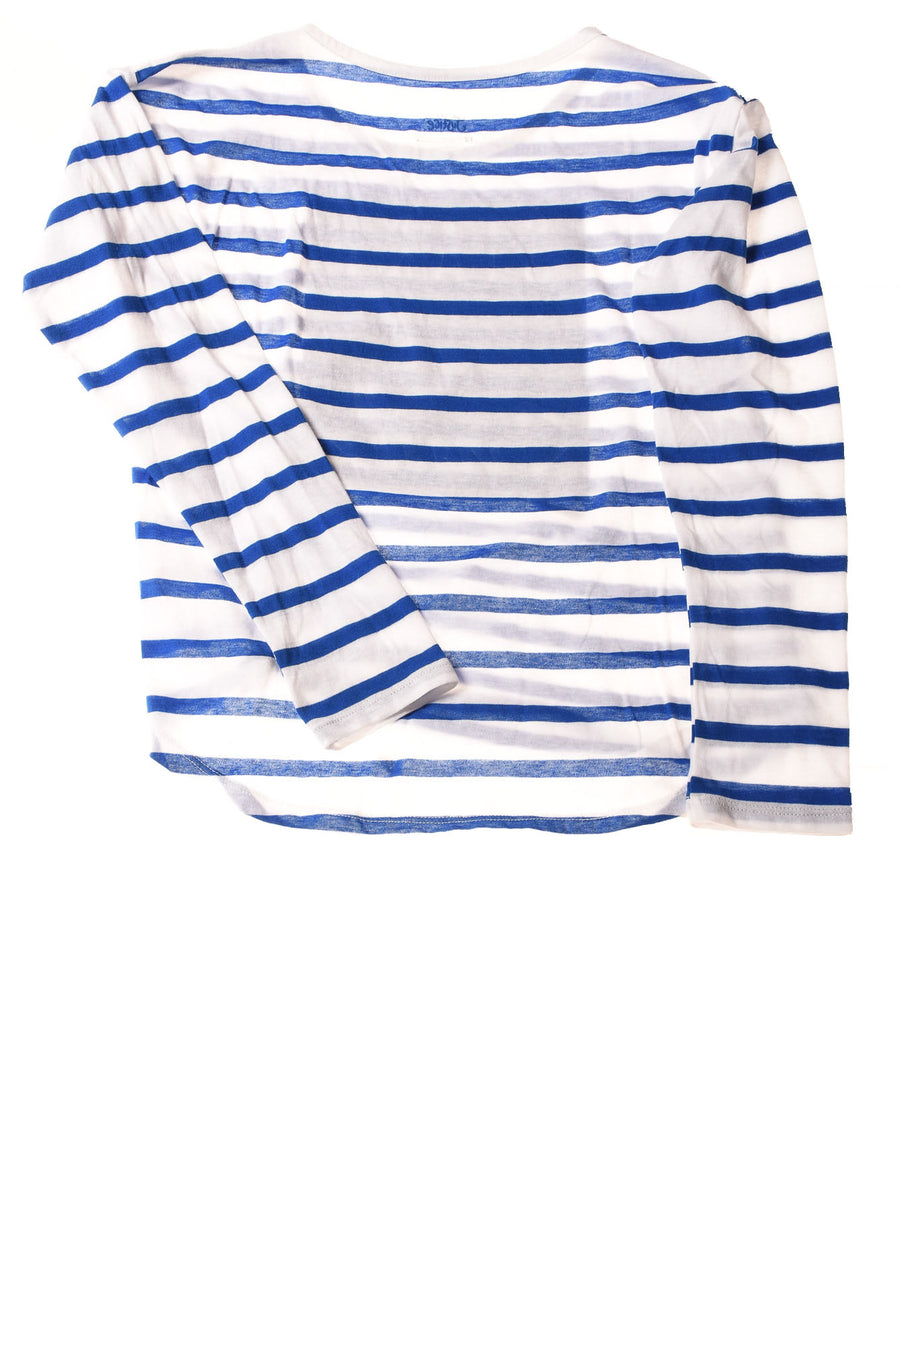 USED Justice Girl's Top  12 Blue & White